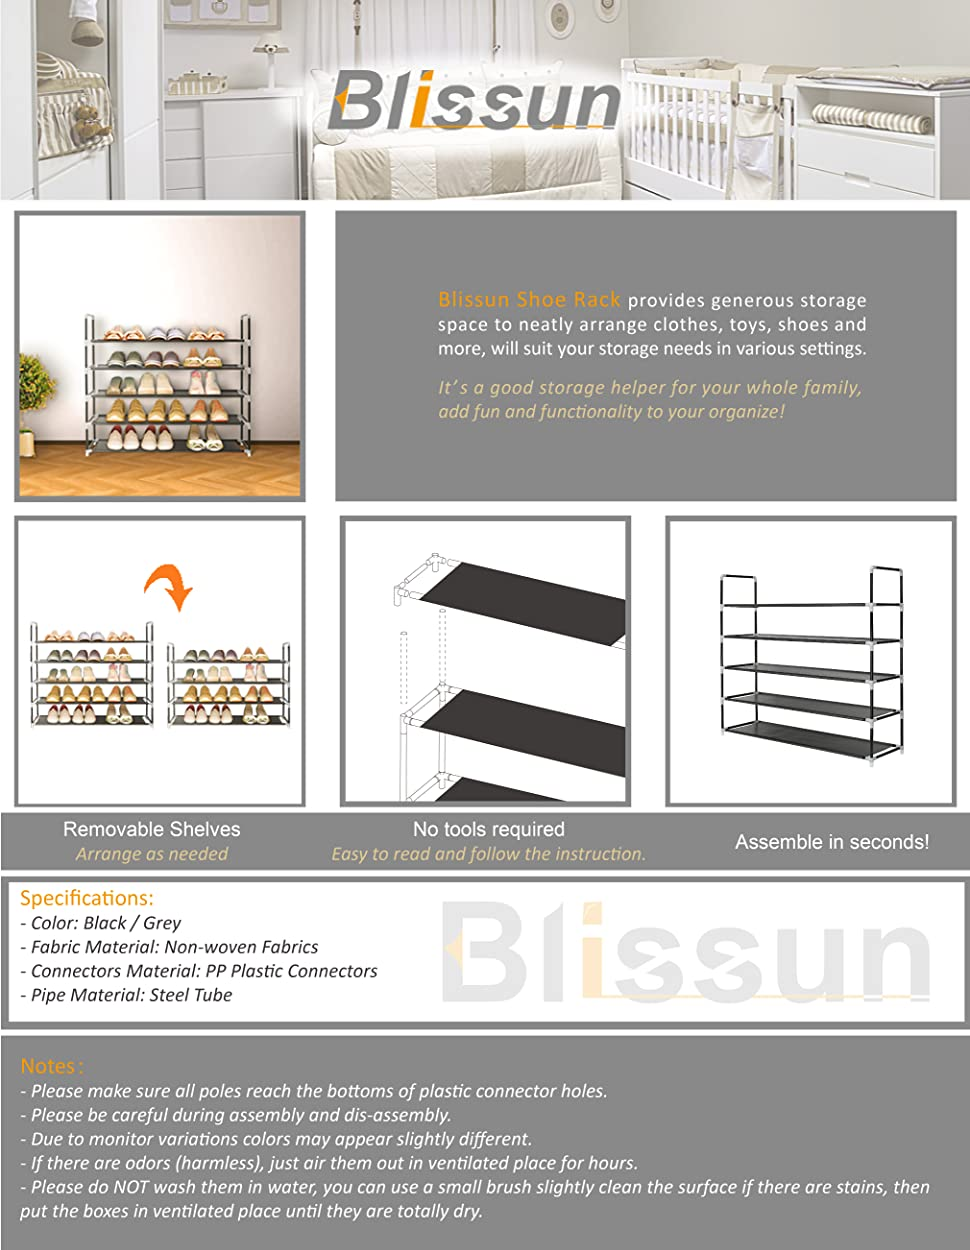 Amazon blissun shoe racks 5 tier space saving nonwoven fabric product description stopboris Gallery